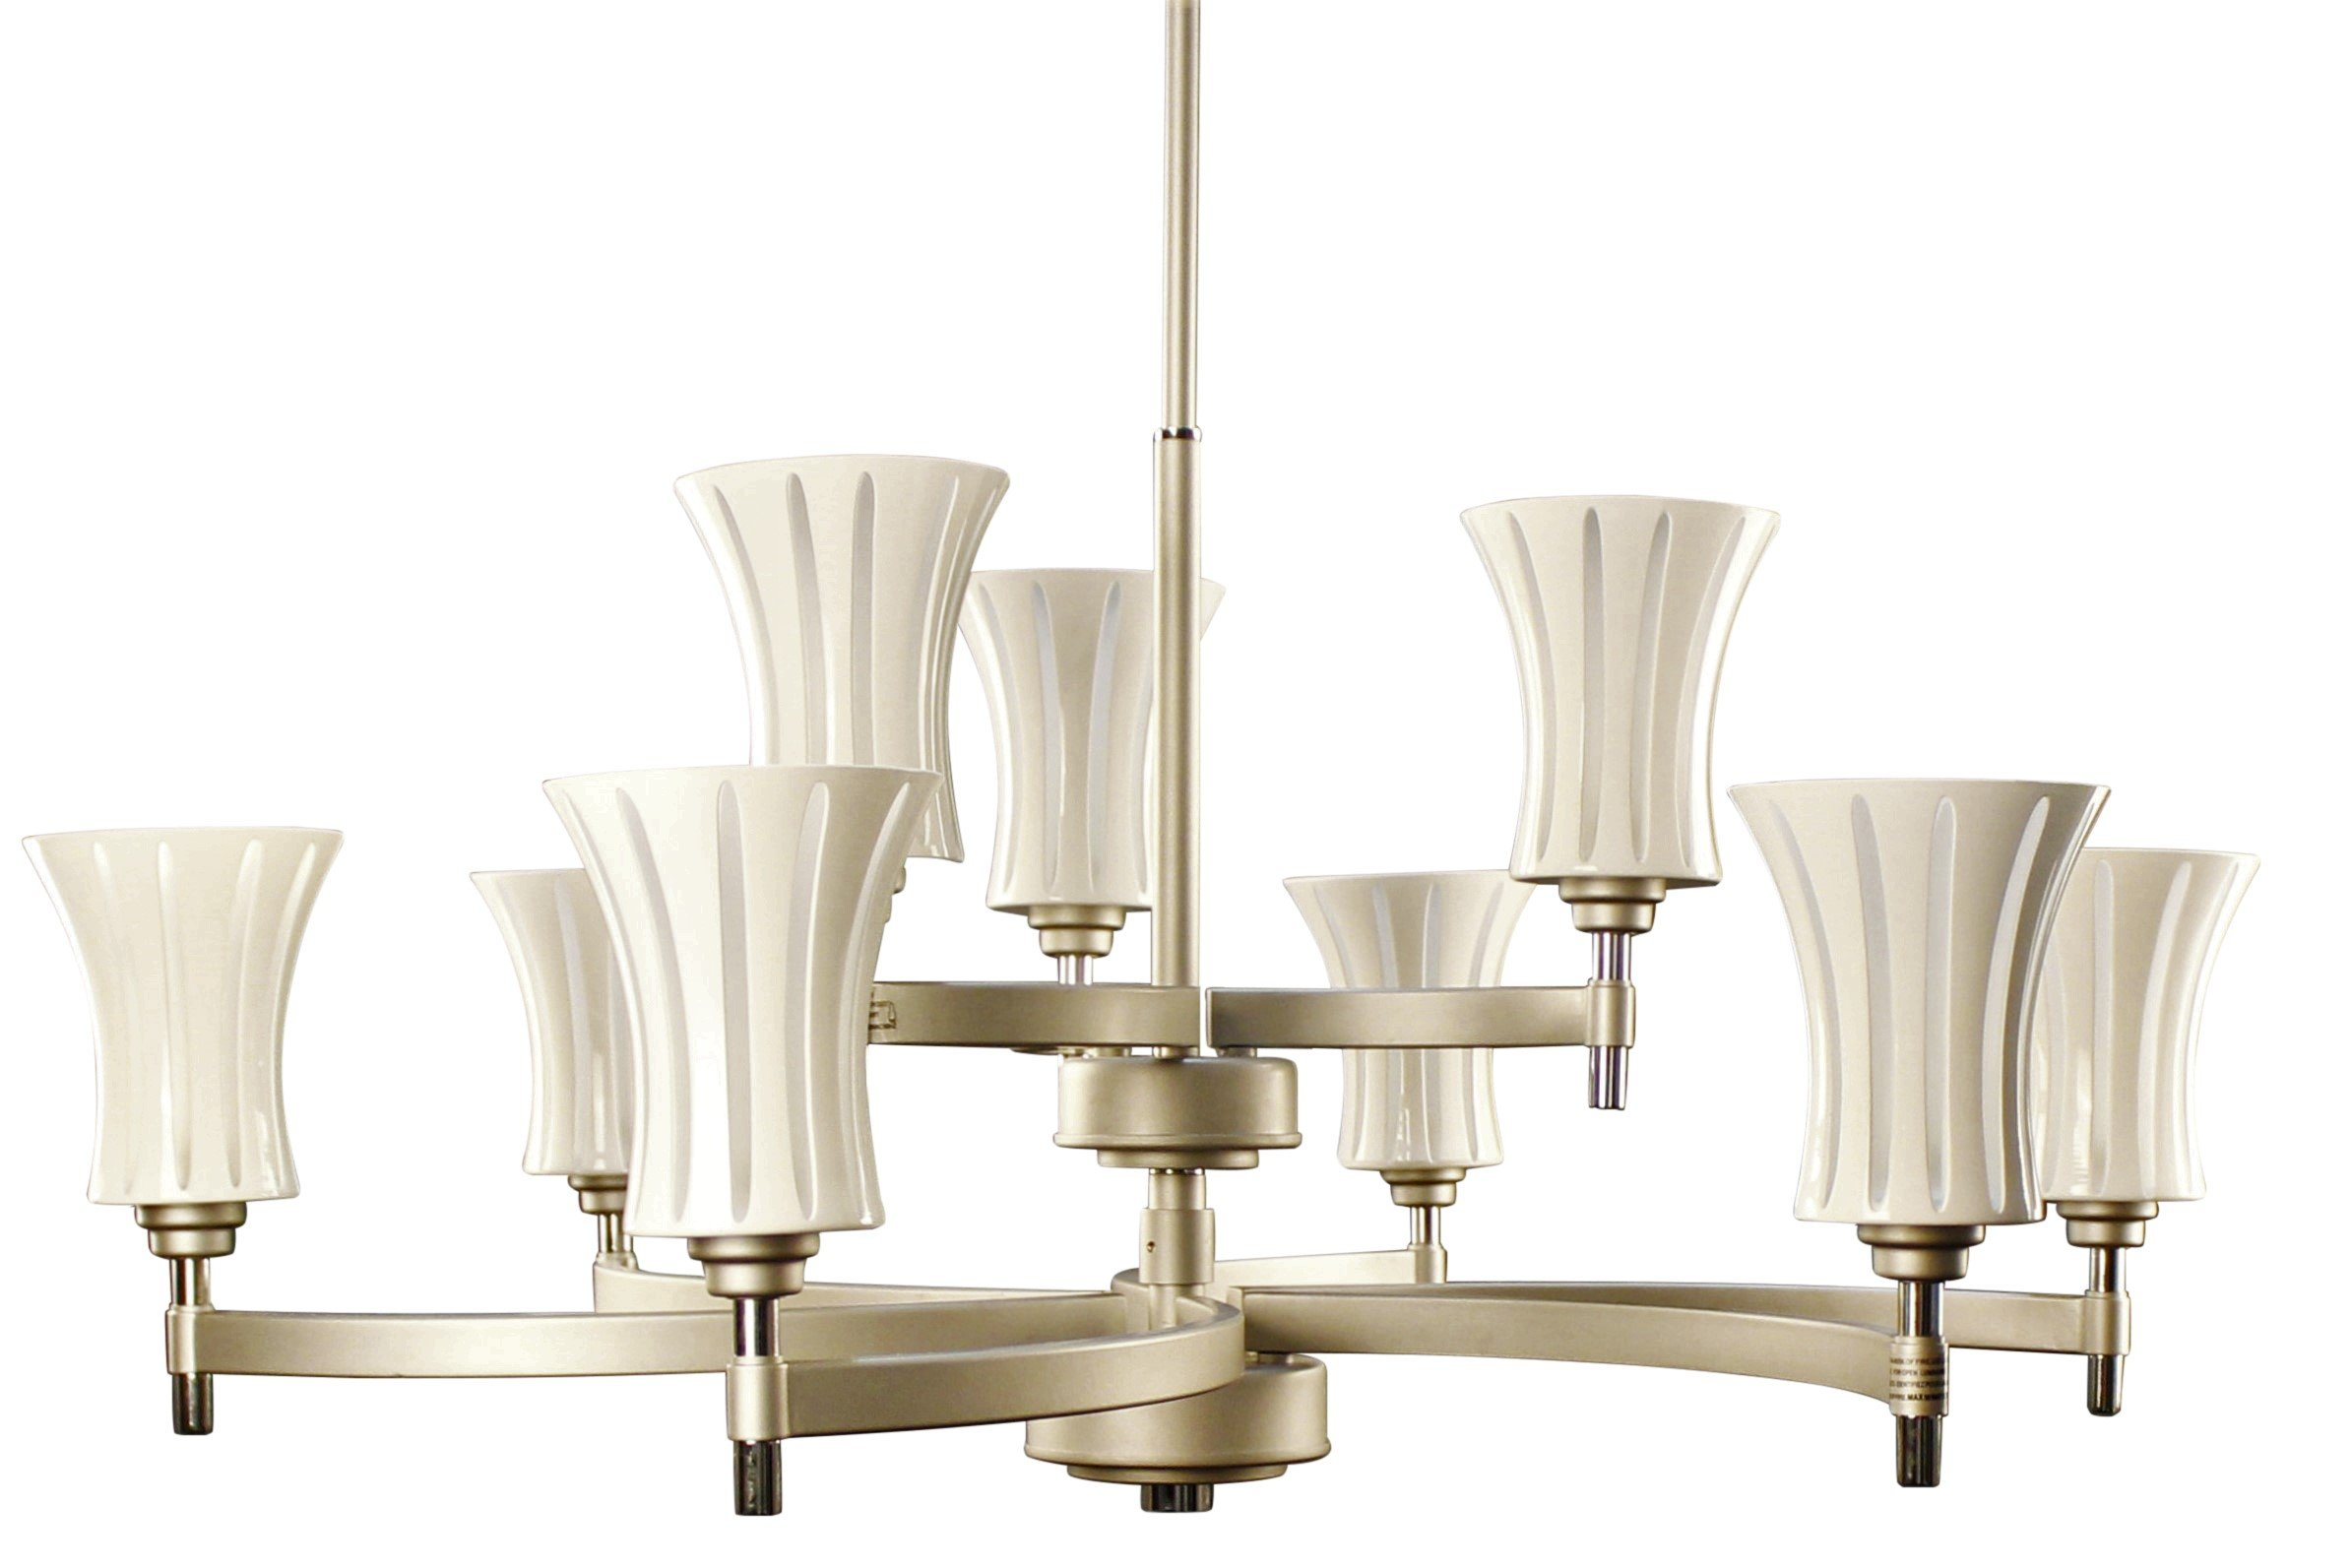 Ulextra Traditional and Modern Chandelier Pendant Lighting for Dining Room / Living Room / Hallway / Kitchen / Study - (8 styles available) (ALUMINUM - 194)